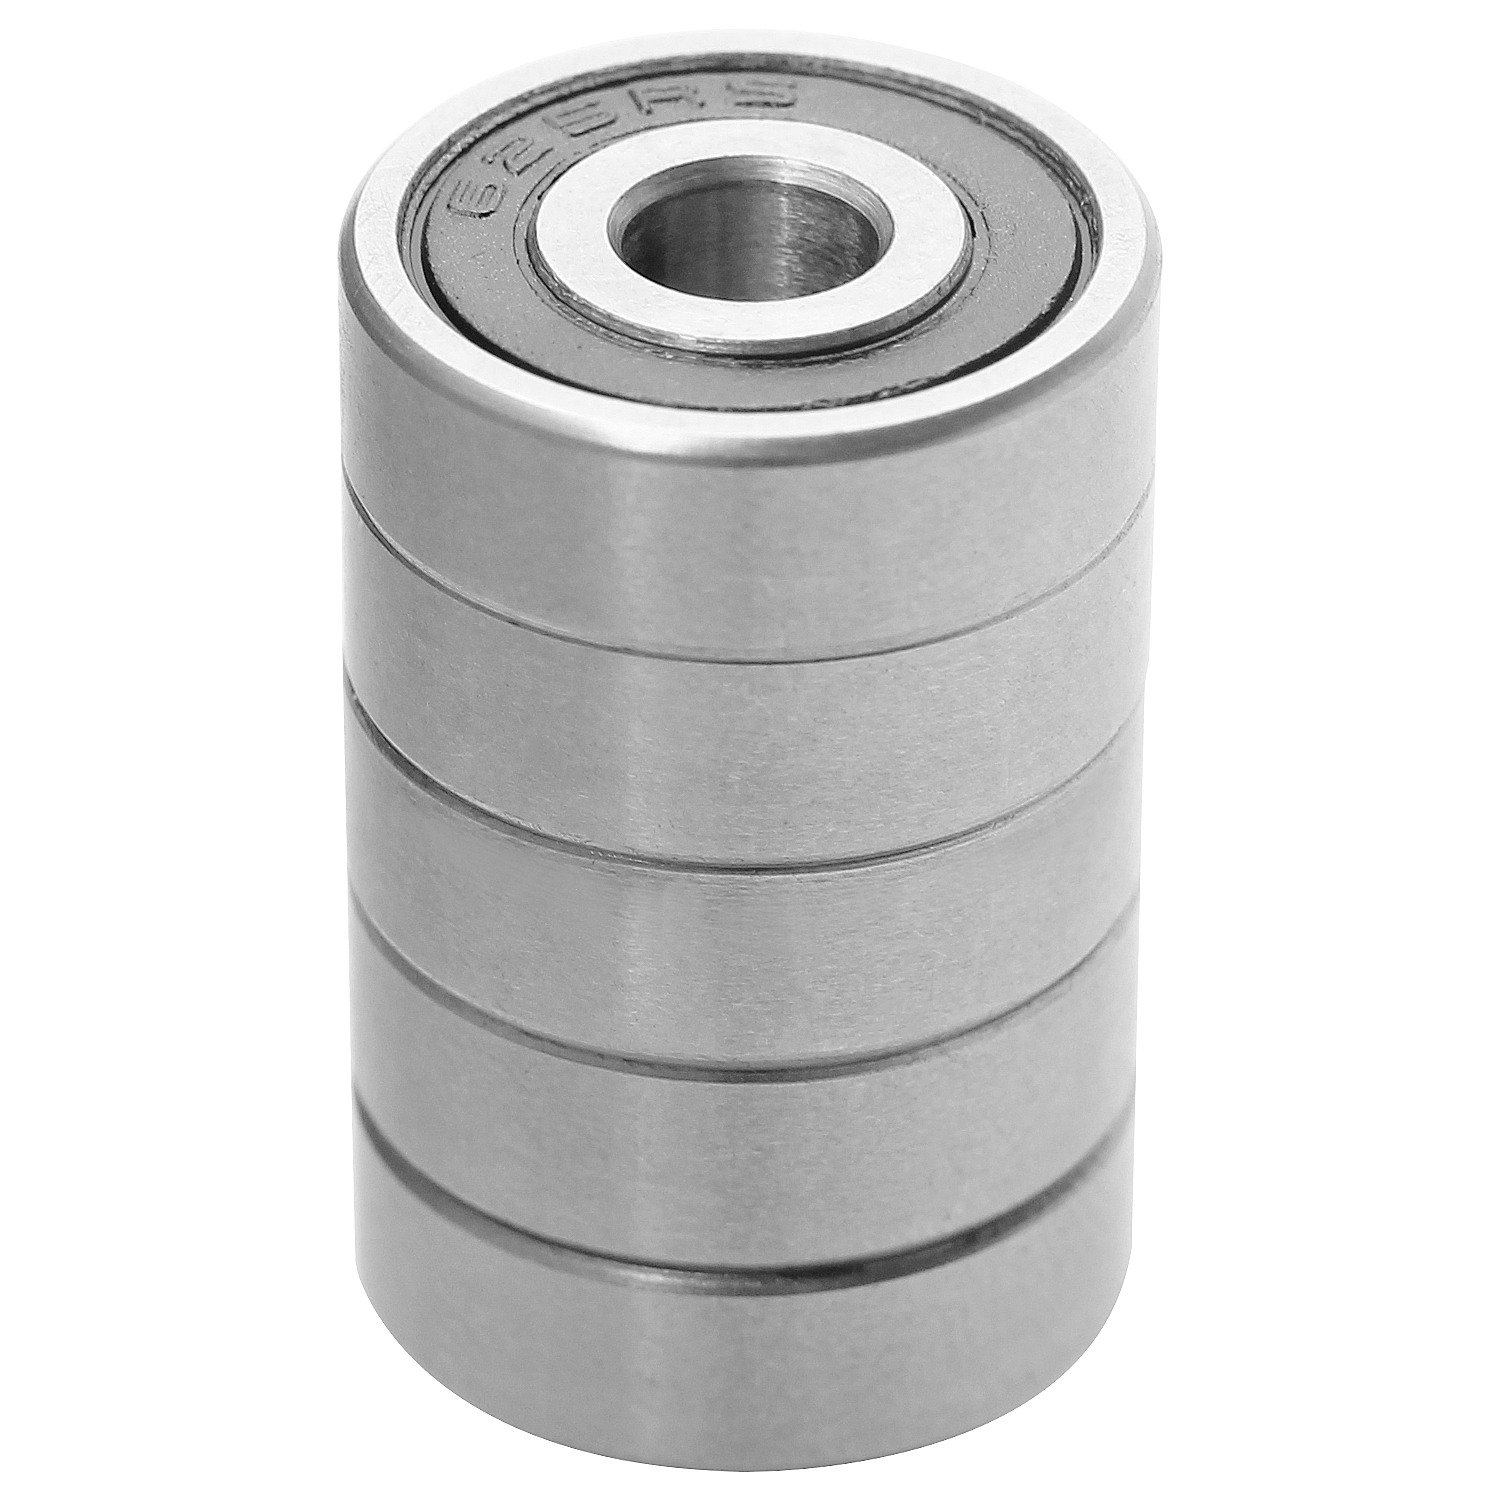 10 Pcs Abuff High Speed Mini Precision 625-2rs Bearings with Double Seal and Pre-Lubricated 625-2rs Ball Bearing